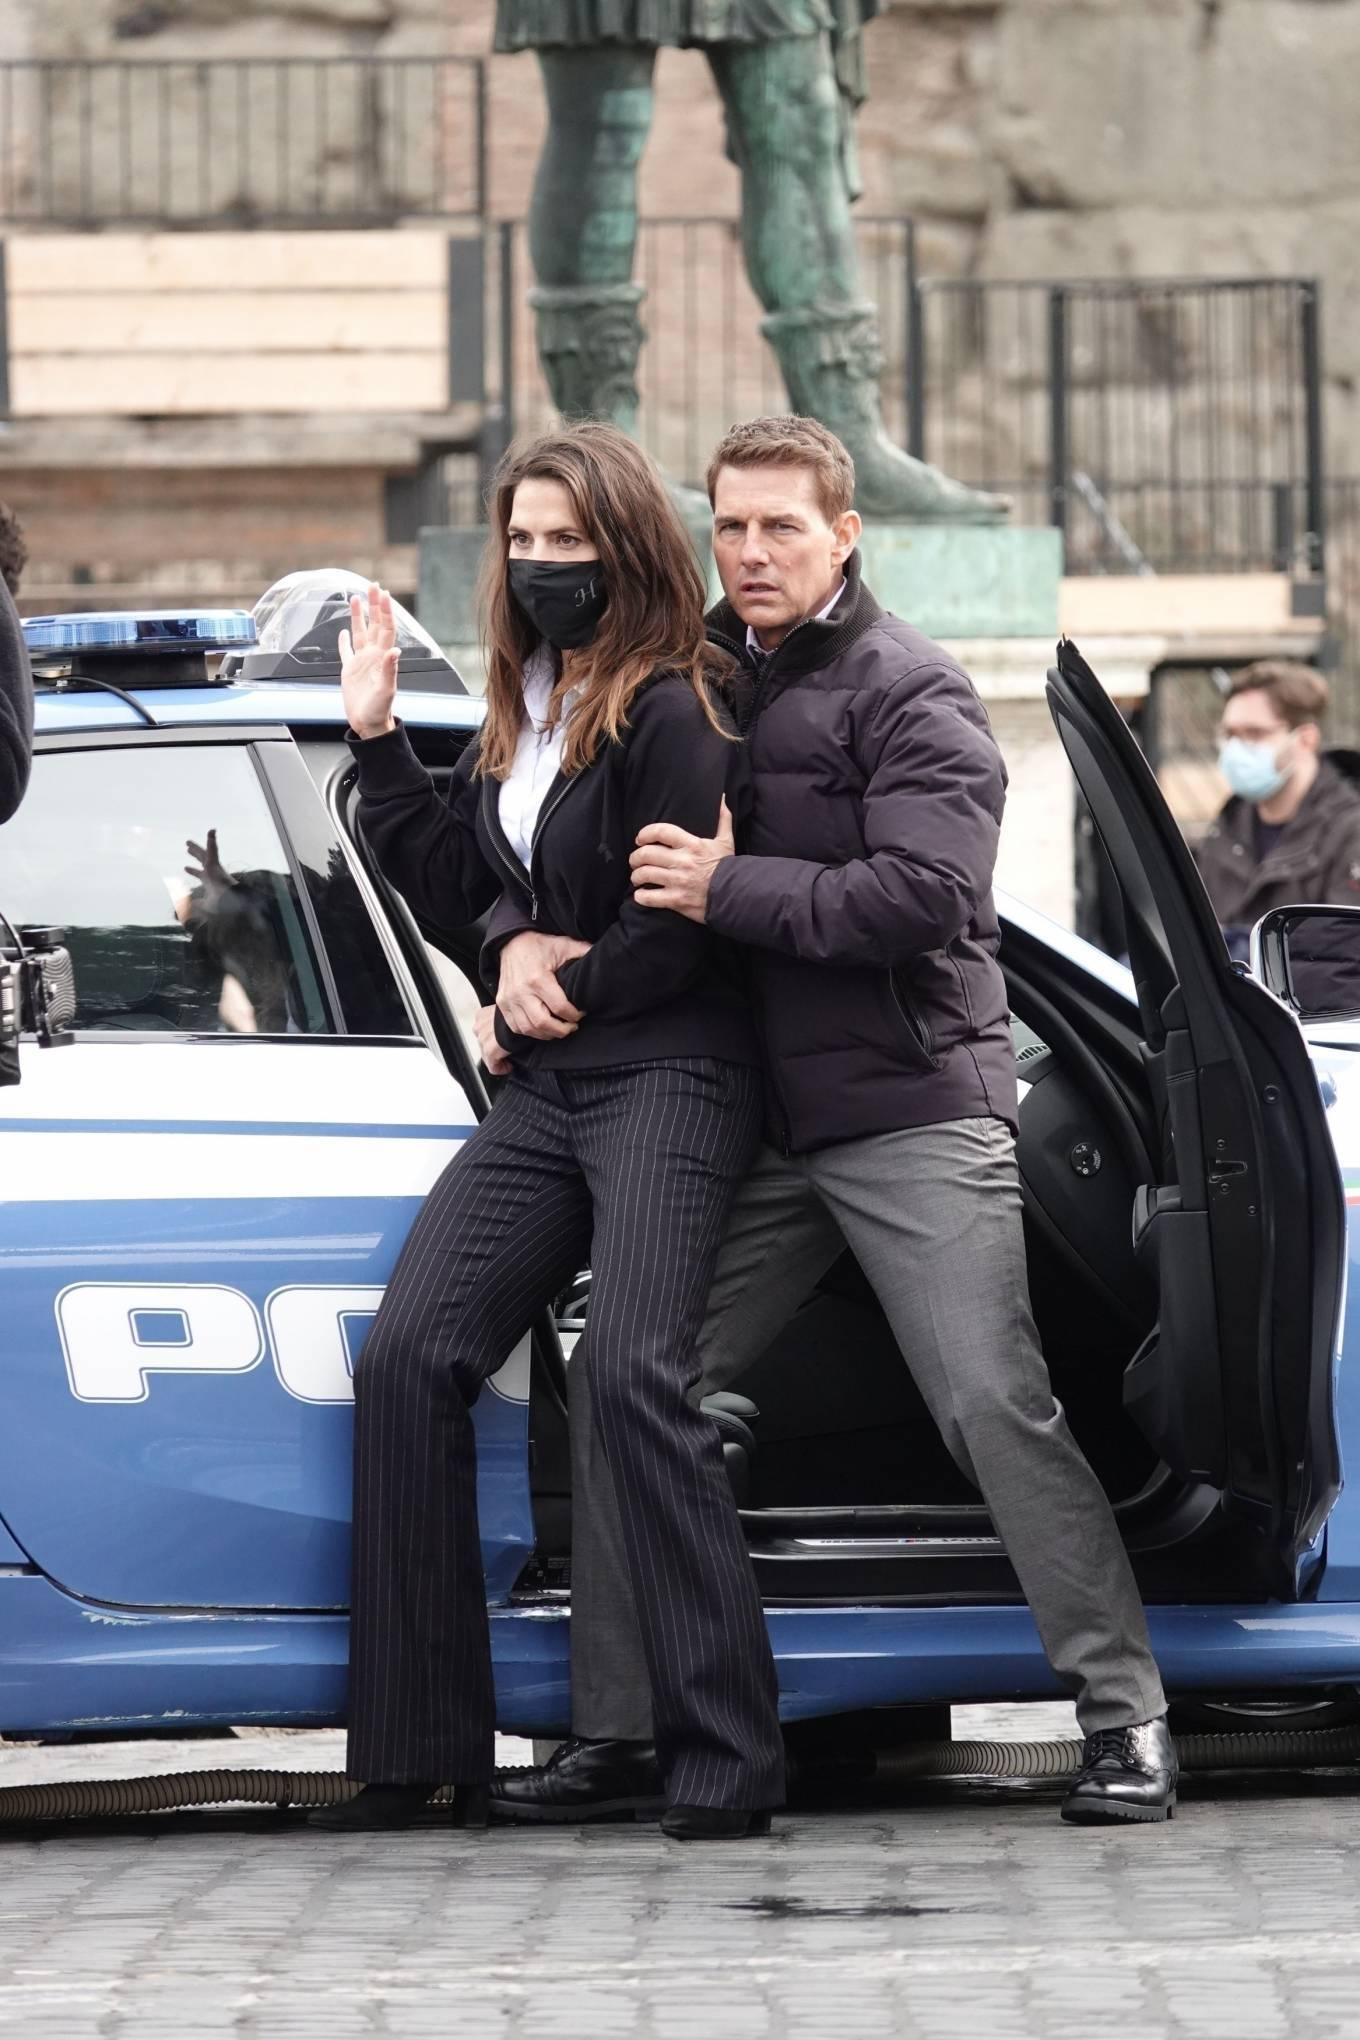 Tom Cruise and Hayley Atwell - Filming 'Mission Impossible' in Rome